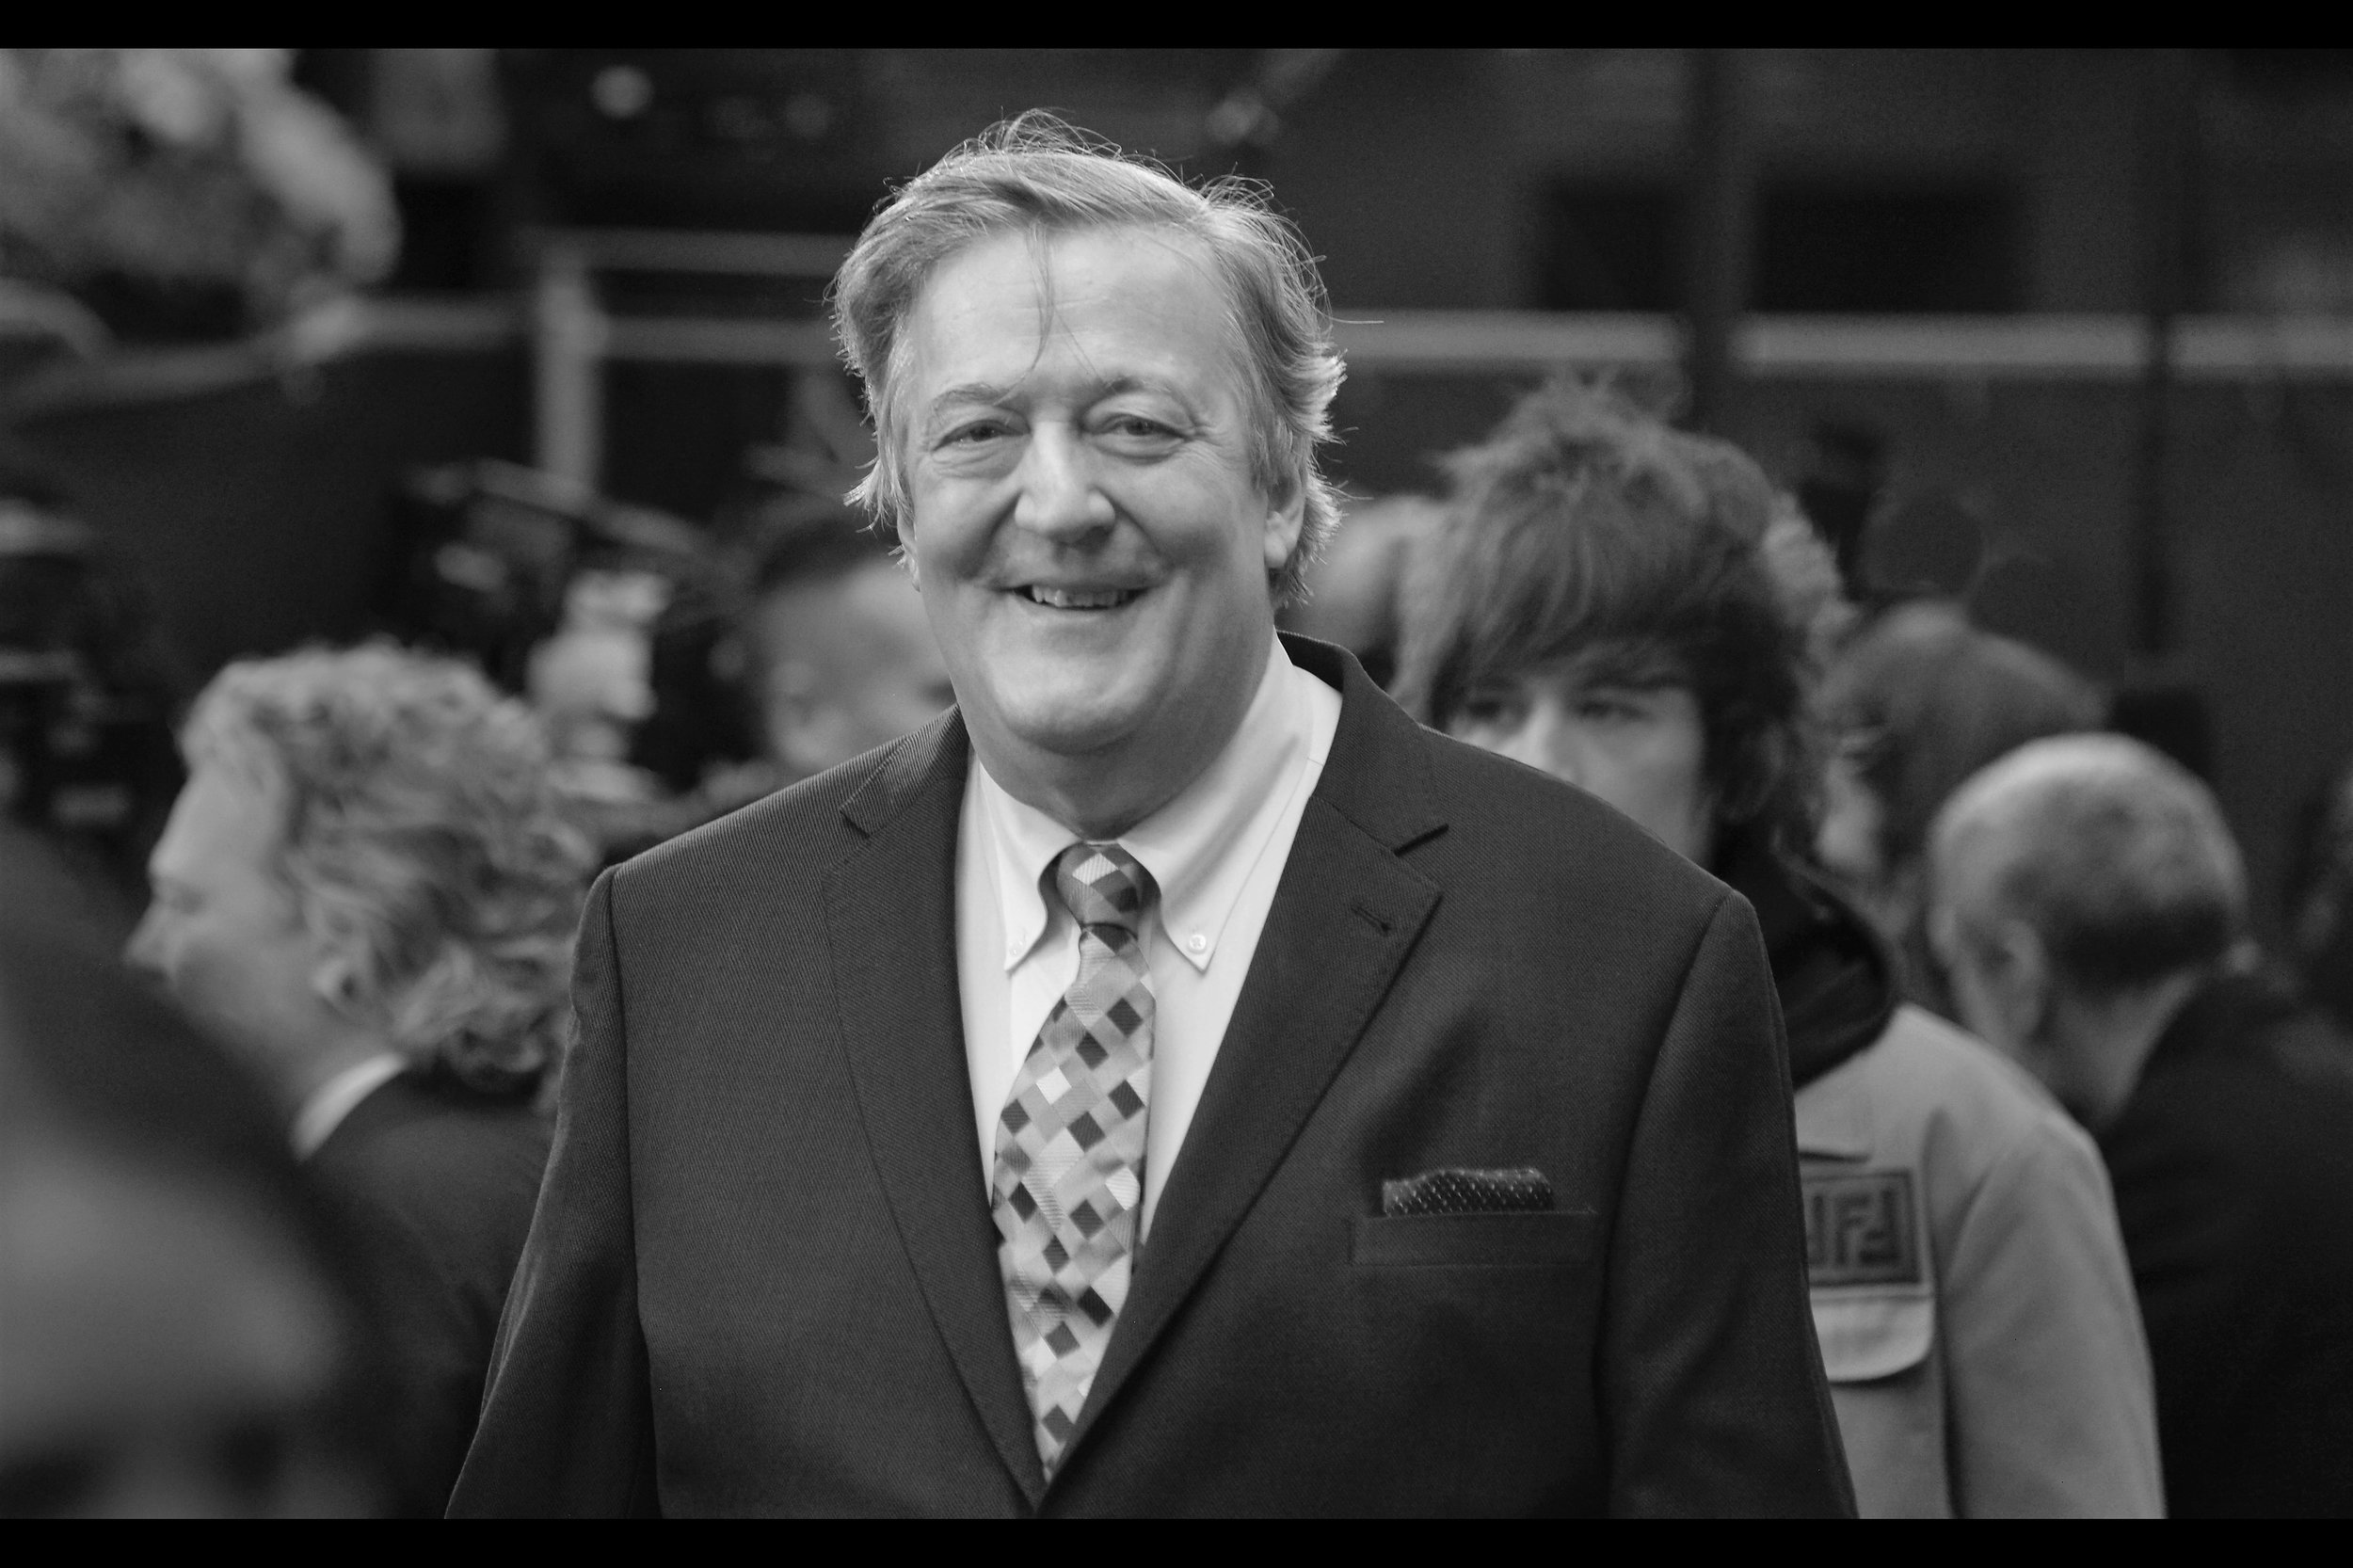 Writer/Presenter/Actor Stephen Fry - host of multiple Bafta ceremonies, he was also the Cheshire Cat in the live-action Alice In Wonderland, the Master of Laketown in two of The Hobbit movies AND was in one of my favourite movies V for Vendetta. His tie features colours you wouldn't believe, so I turned it down.